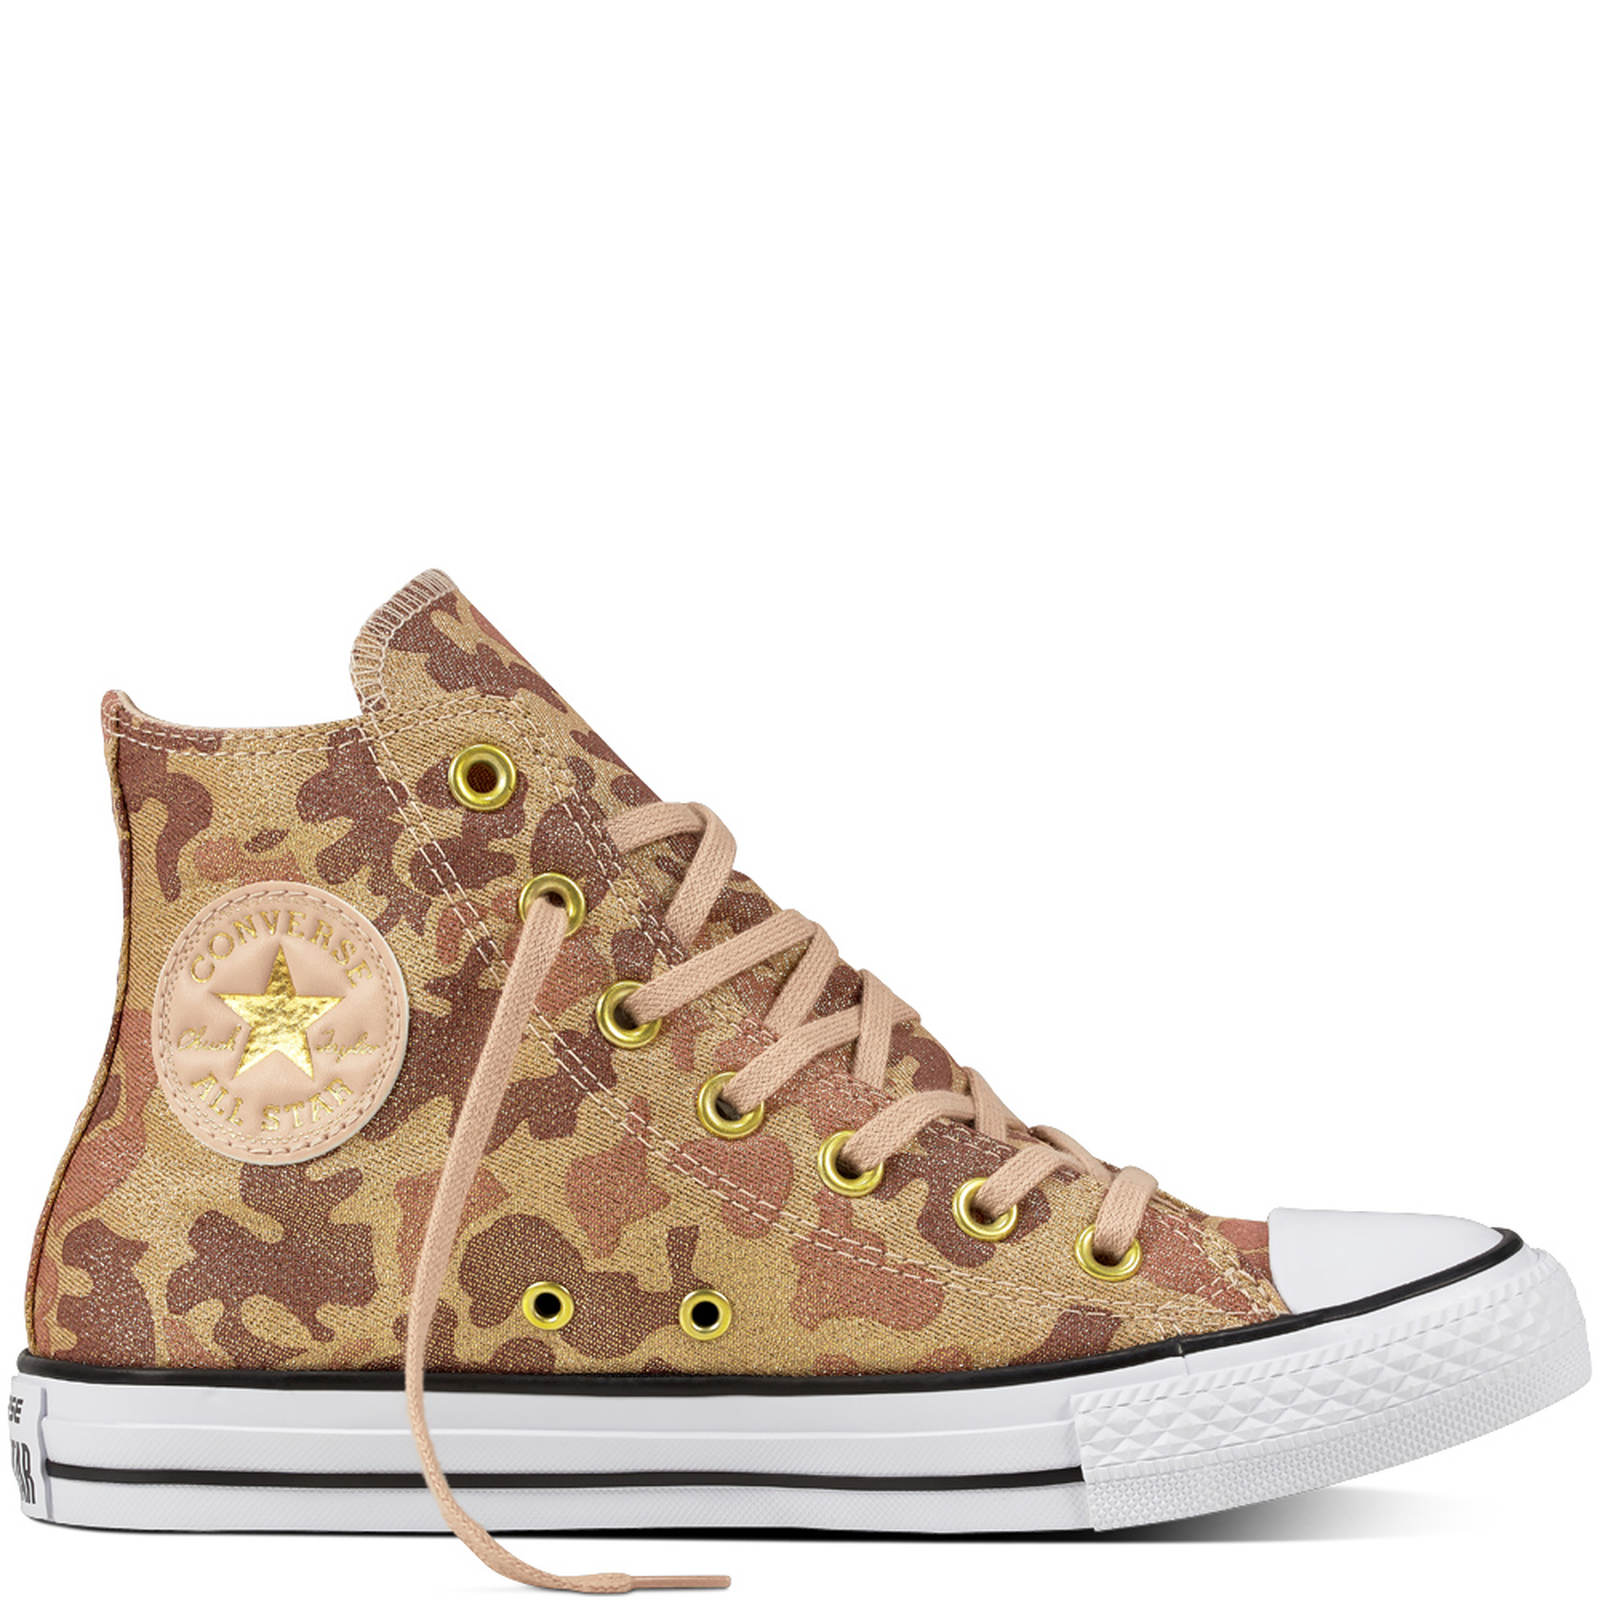 Converse barevné tenisky Chuck Taylor All Star Particle Beige/Cameo Brown